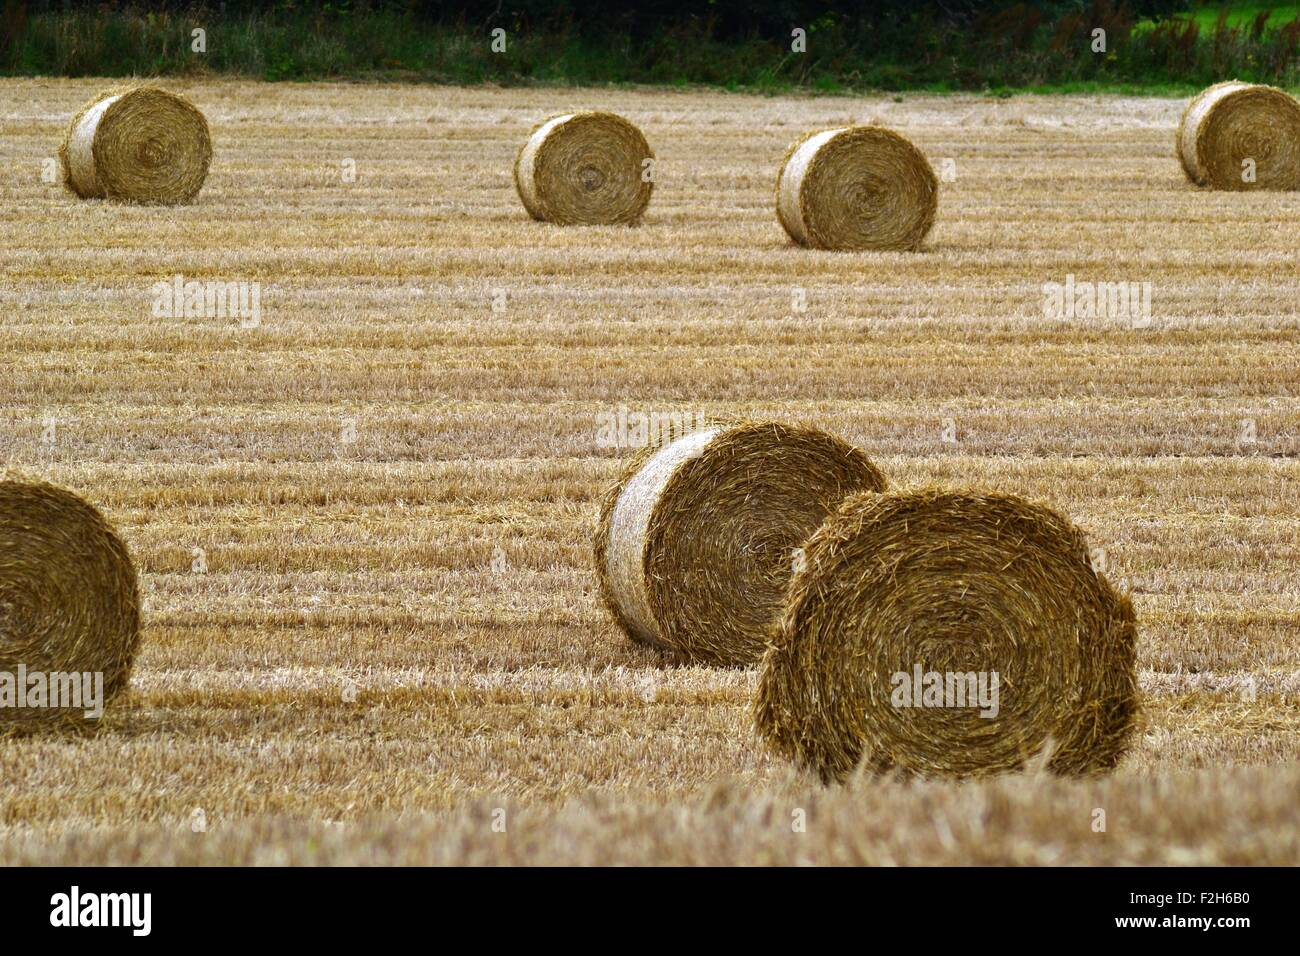 Haybales in a hayfield - Stock Image